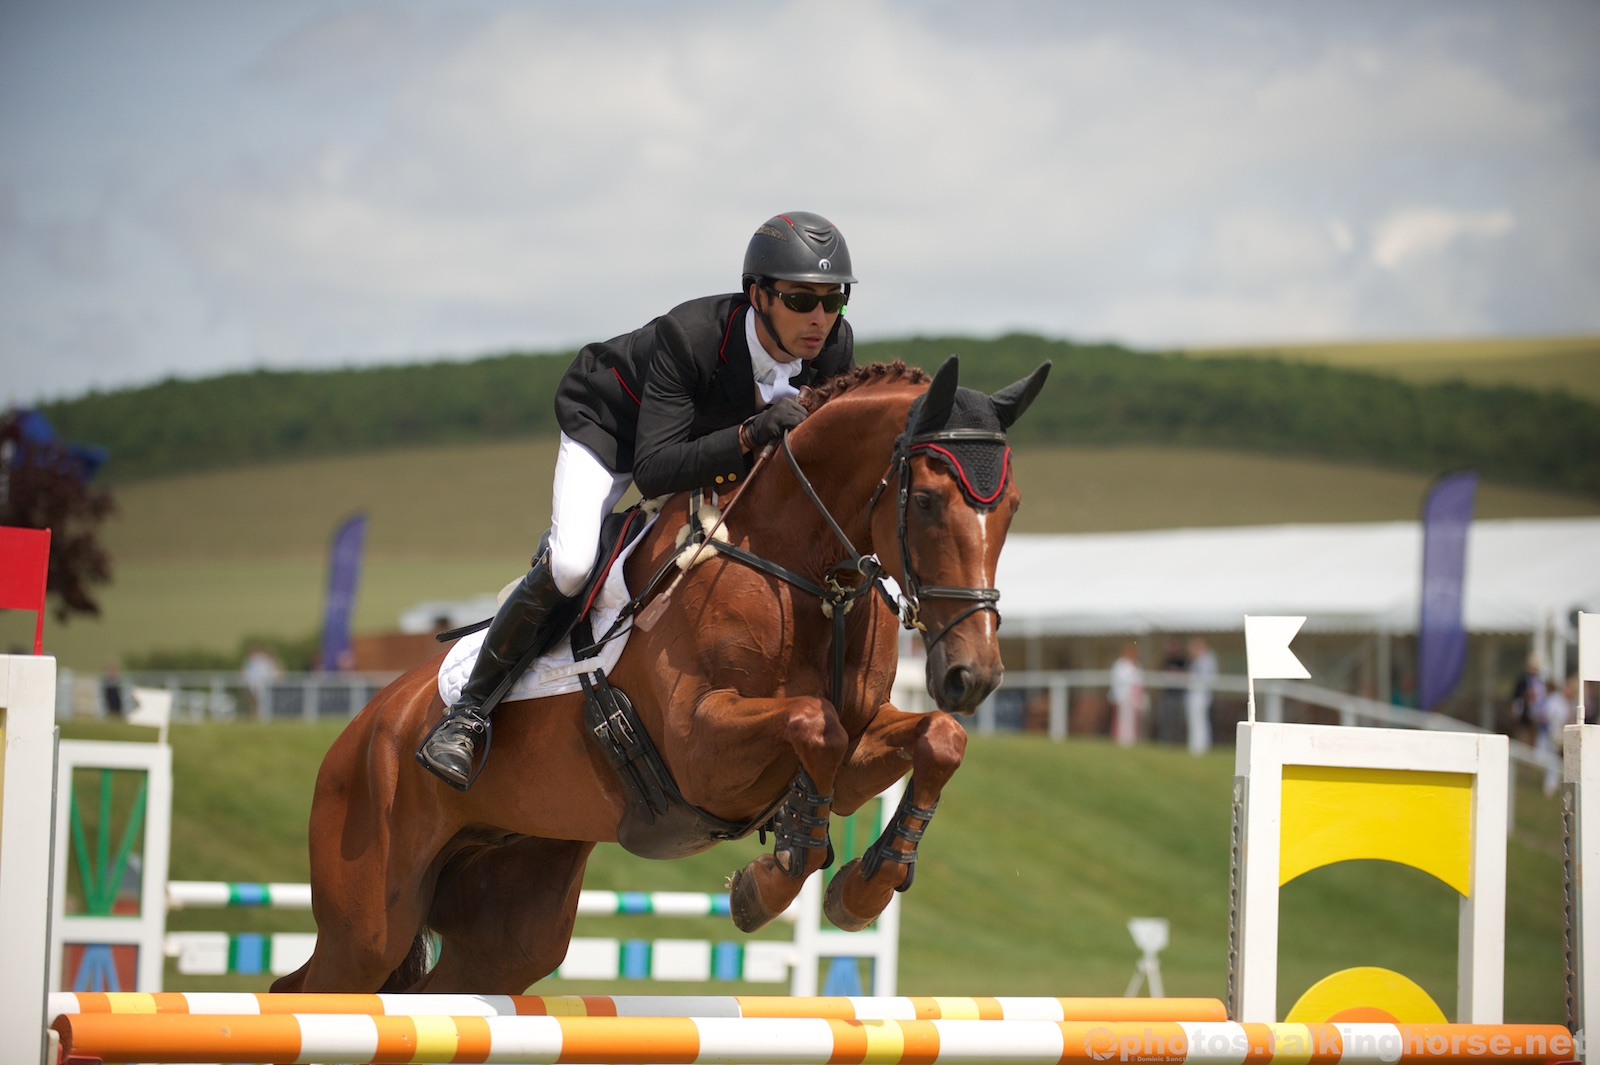 Barbury Horse Trials 2015